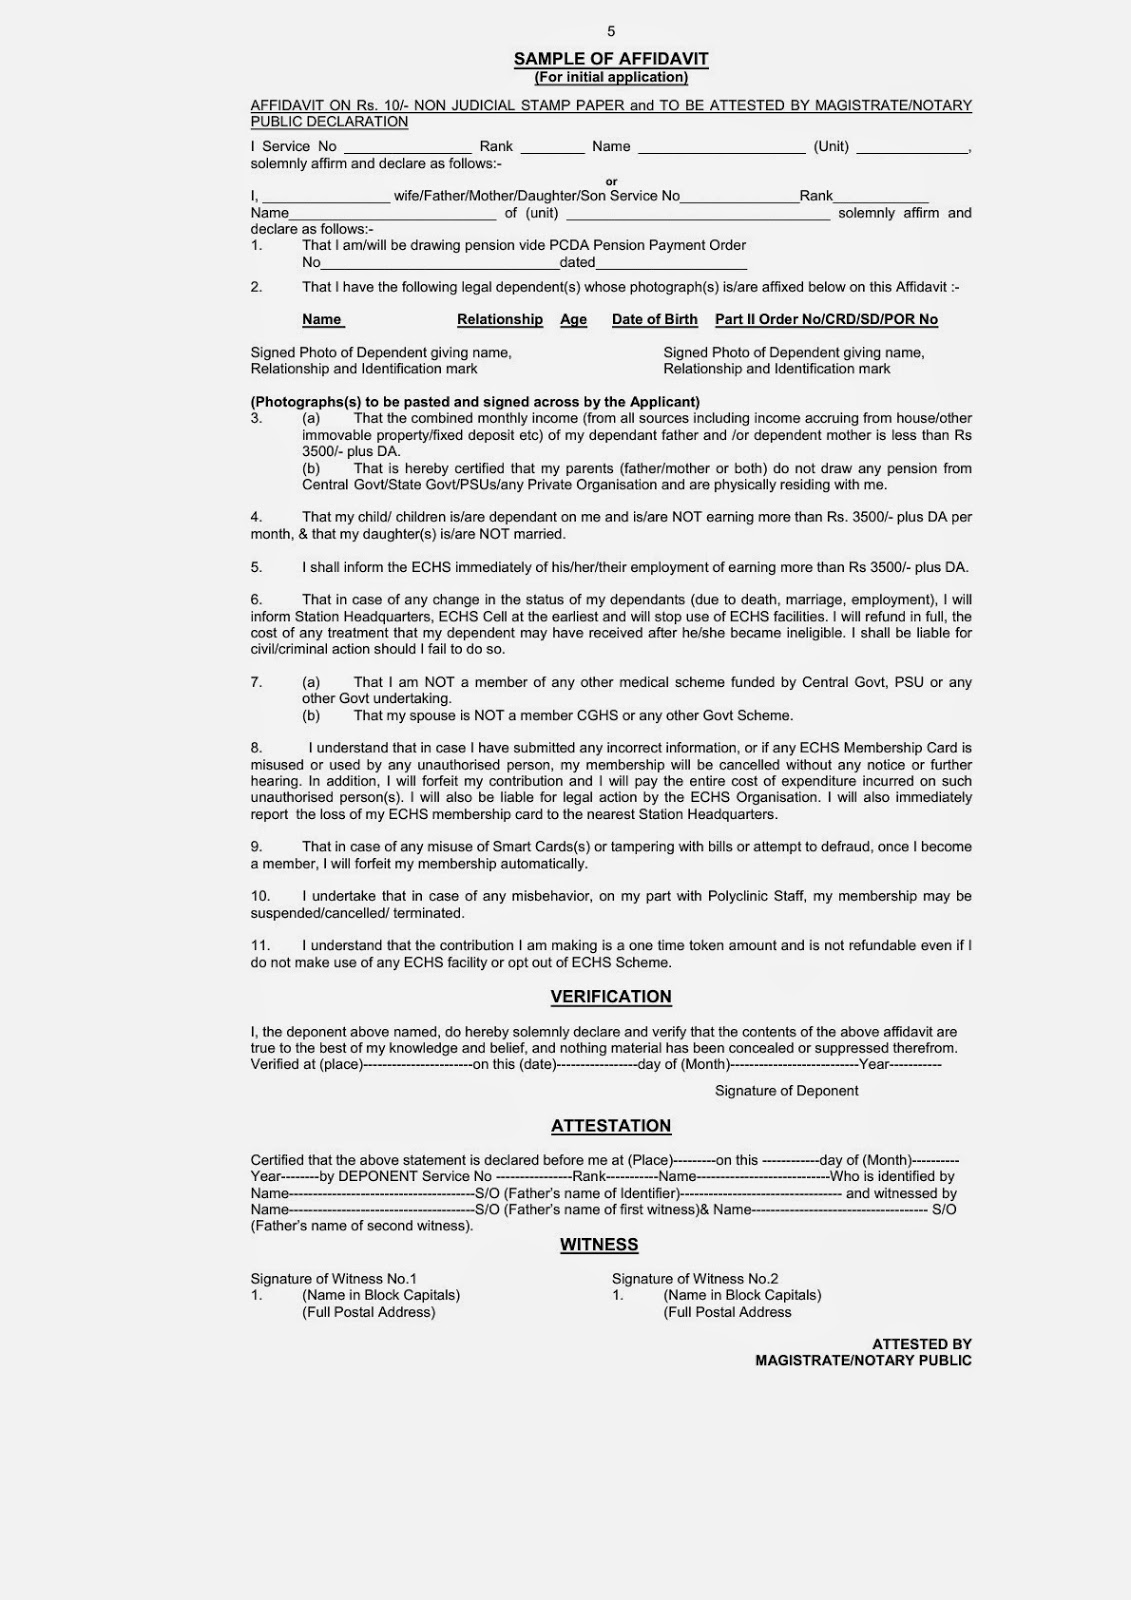 Echs application form for membership rev 2015 central government echsapplicationformformembershipformatofaffidevit altavistaventures Images